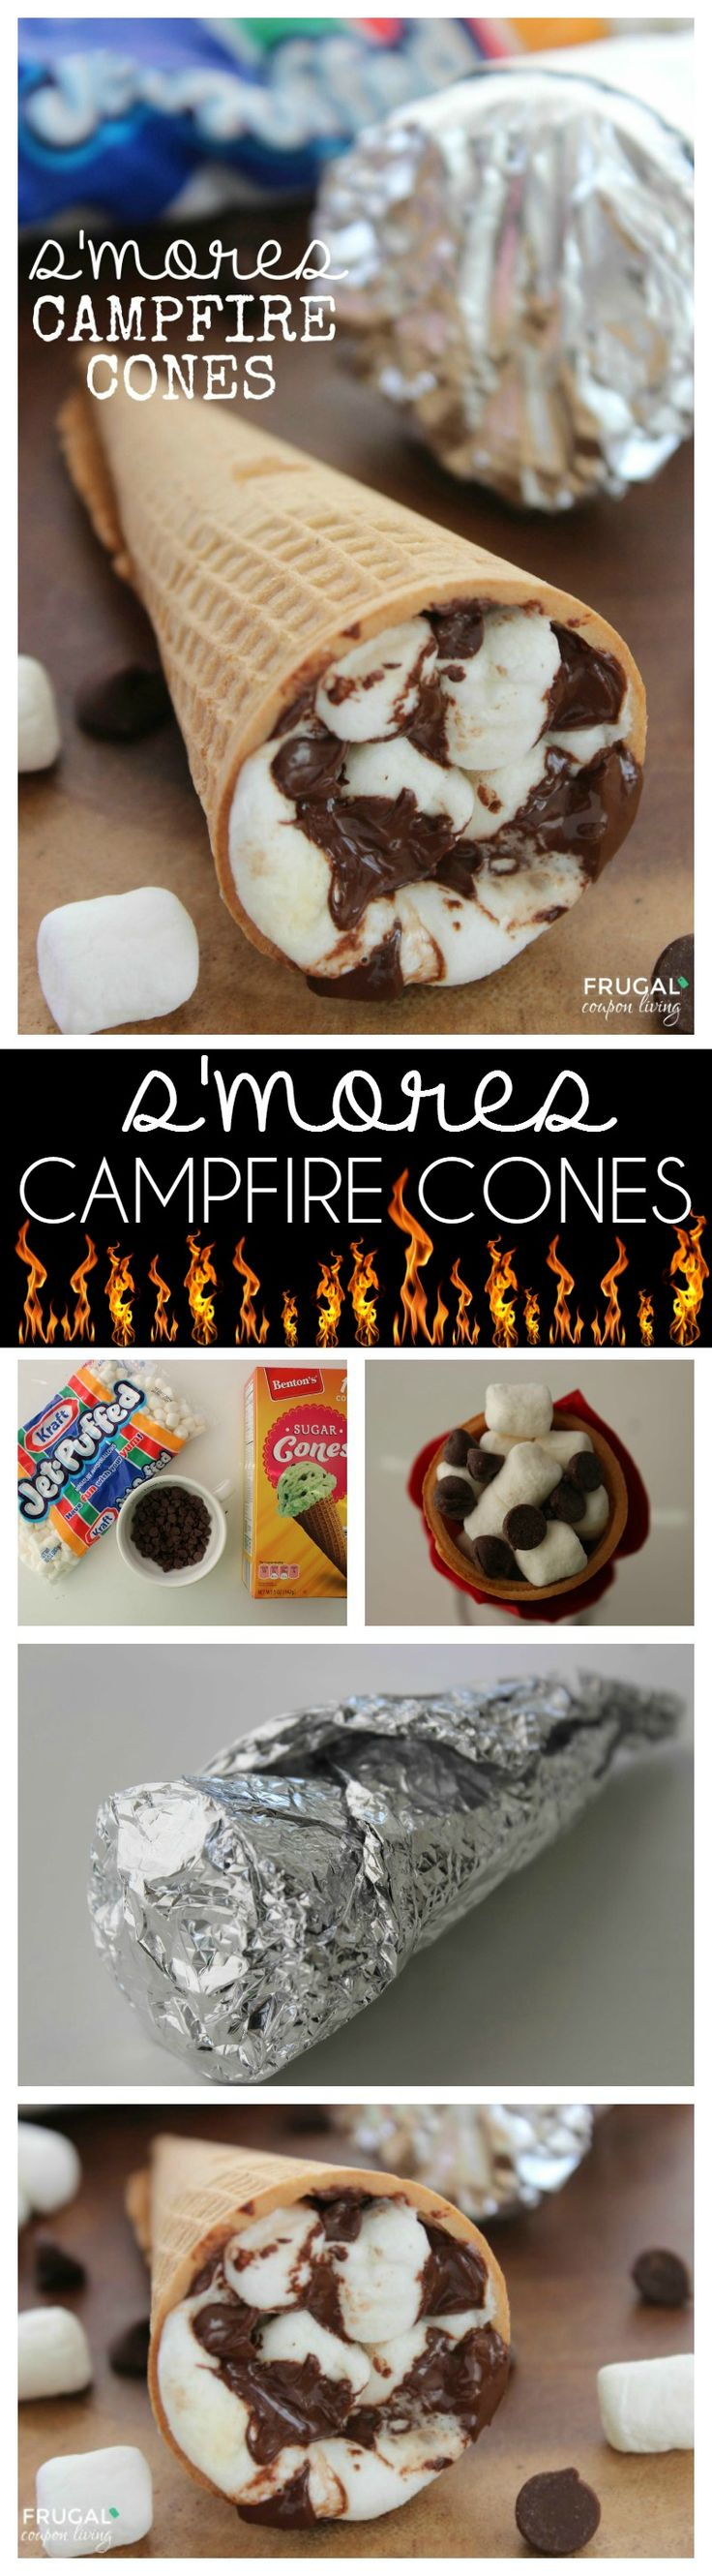 white Cones Campfires Cone  Campfire   air Campfire and Campfire S     mores   Recipe Recipes jordan   infrared